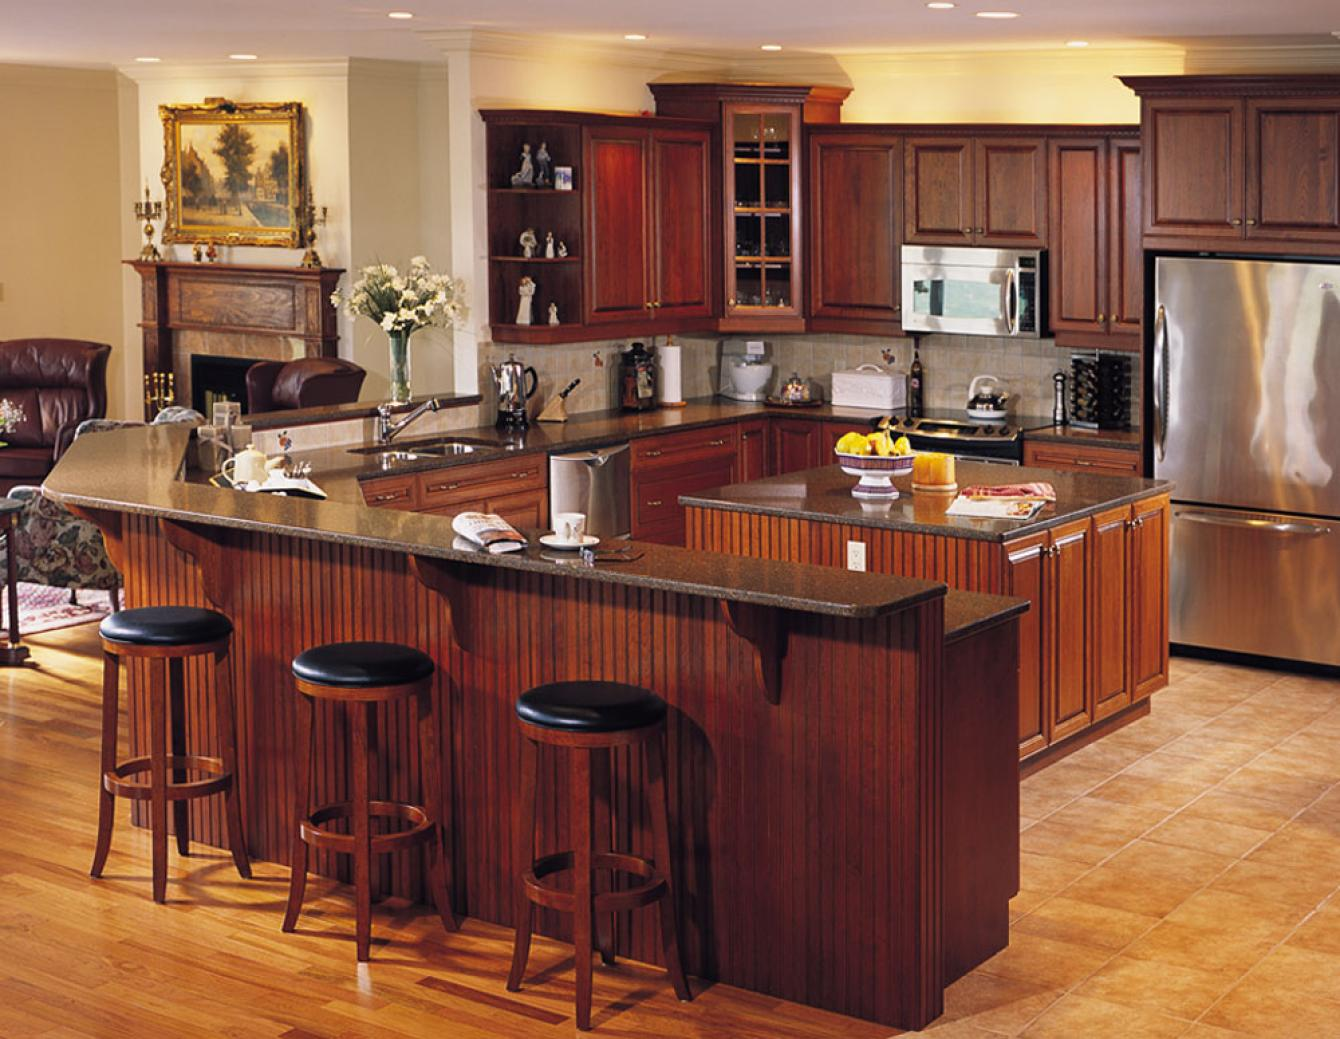 Traditional kitchen design gallery dover woods Kitchen gallery and design